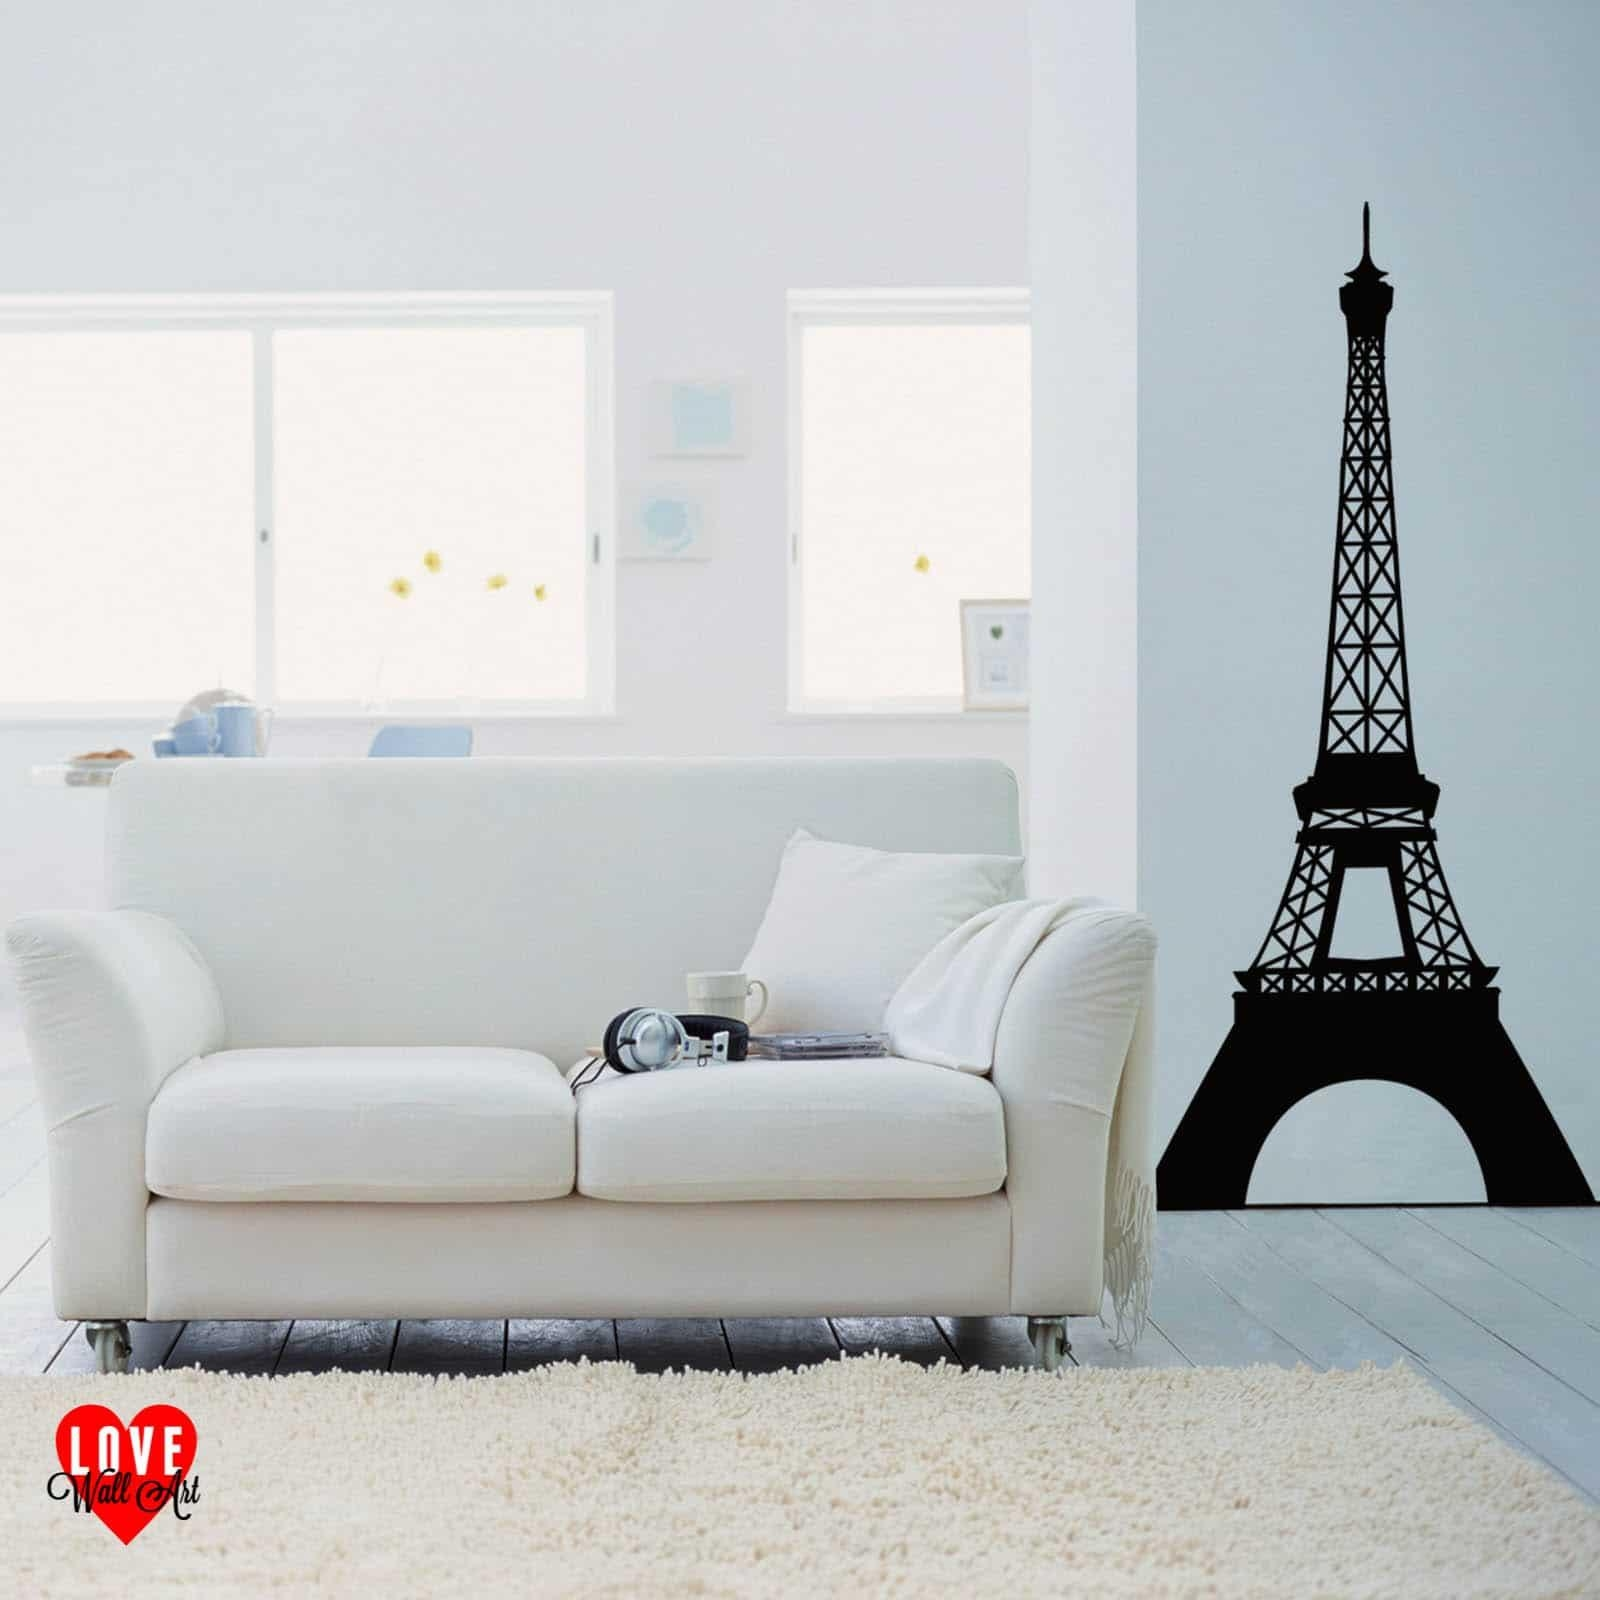 Eiffel Tower Wall Sticker Wall Art Design Paris France Pertaining To Eiffel Tower Wall Art (Image 8 of 20)